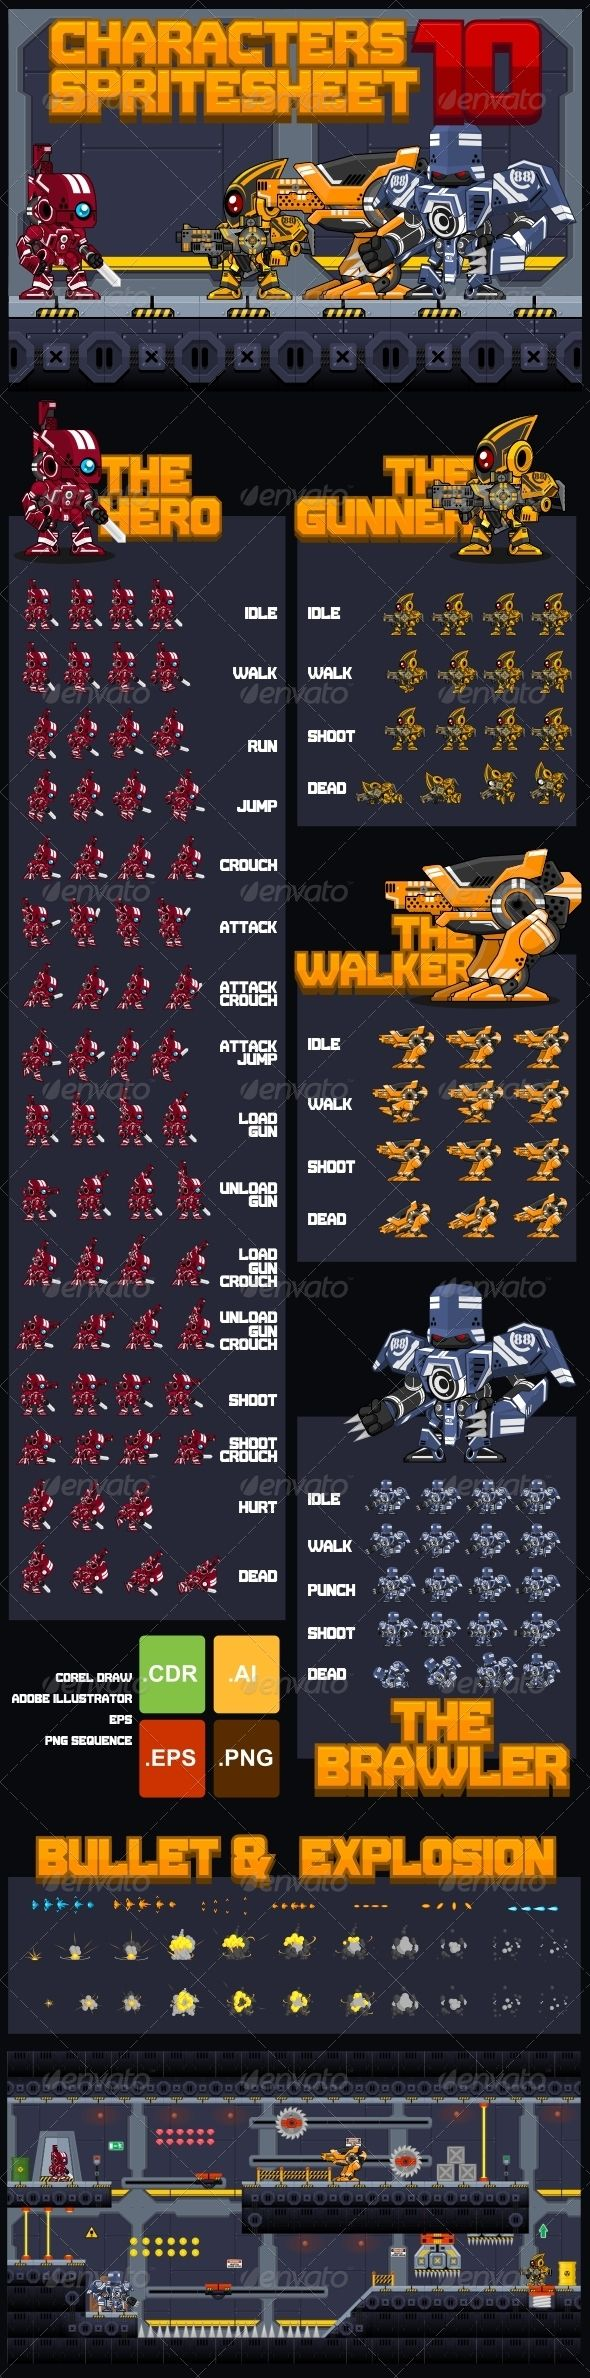 A collection of various characters spritesheets for creating a 2D action platformer or sidescroller game. Especially games with robot, mecha, cyborg, war, outer space, futuristic, or techno theme     #game #asset #spritesheet #character #sprite #robot #mecha